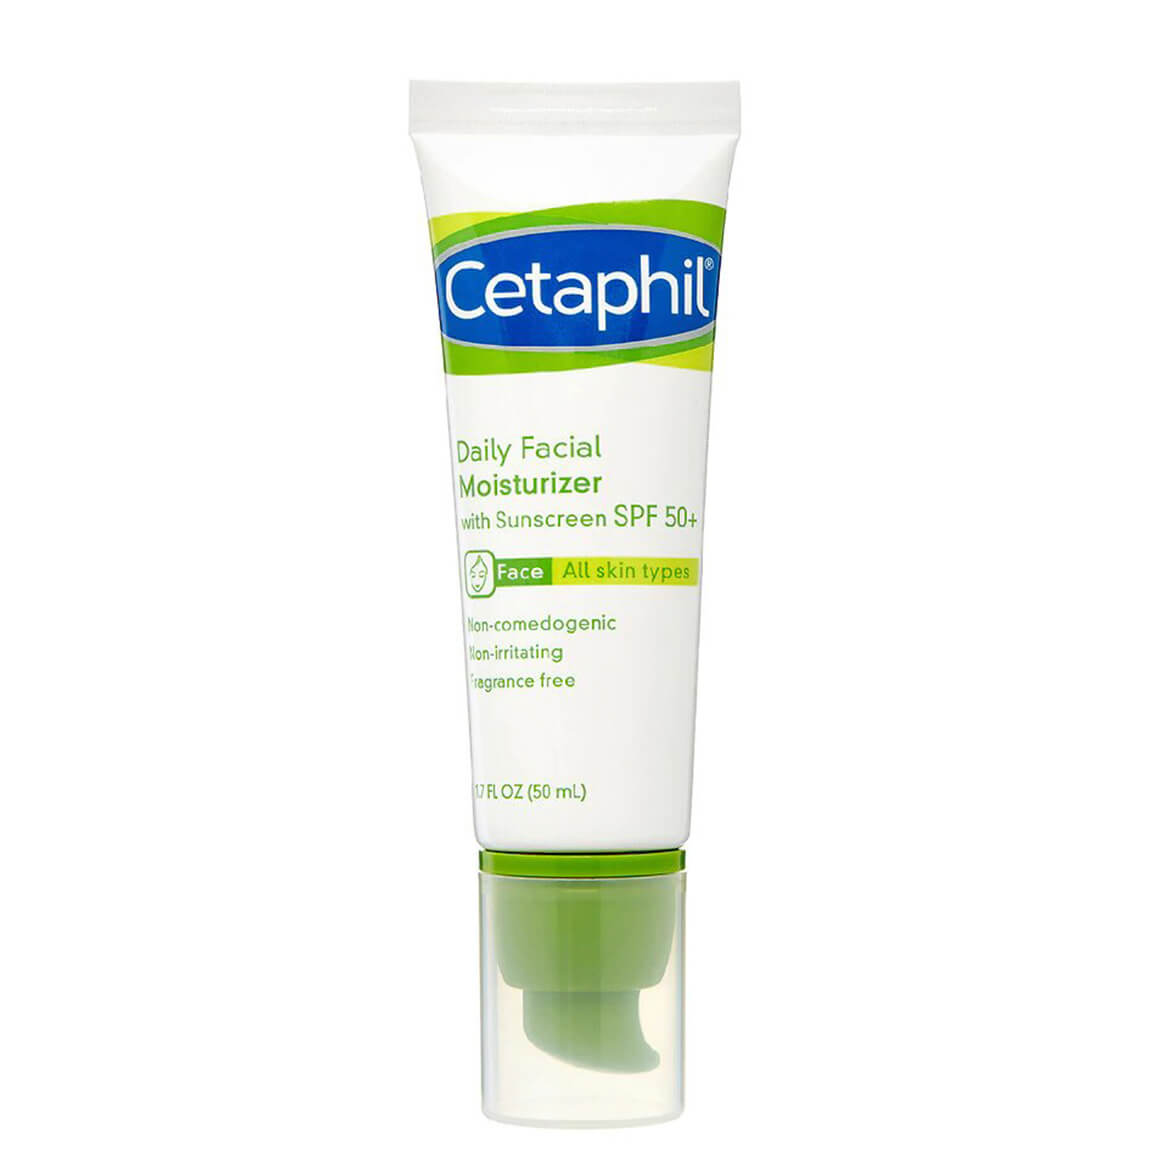 Cetaphil Daily Facial Moisturizer with SPF50+ 50ml